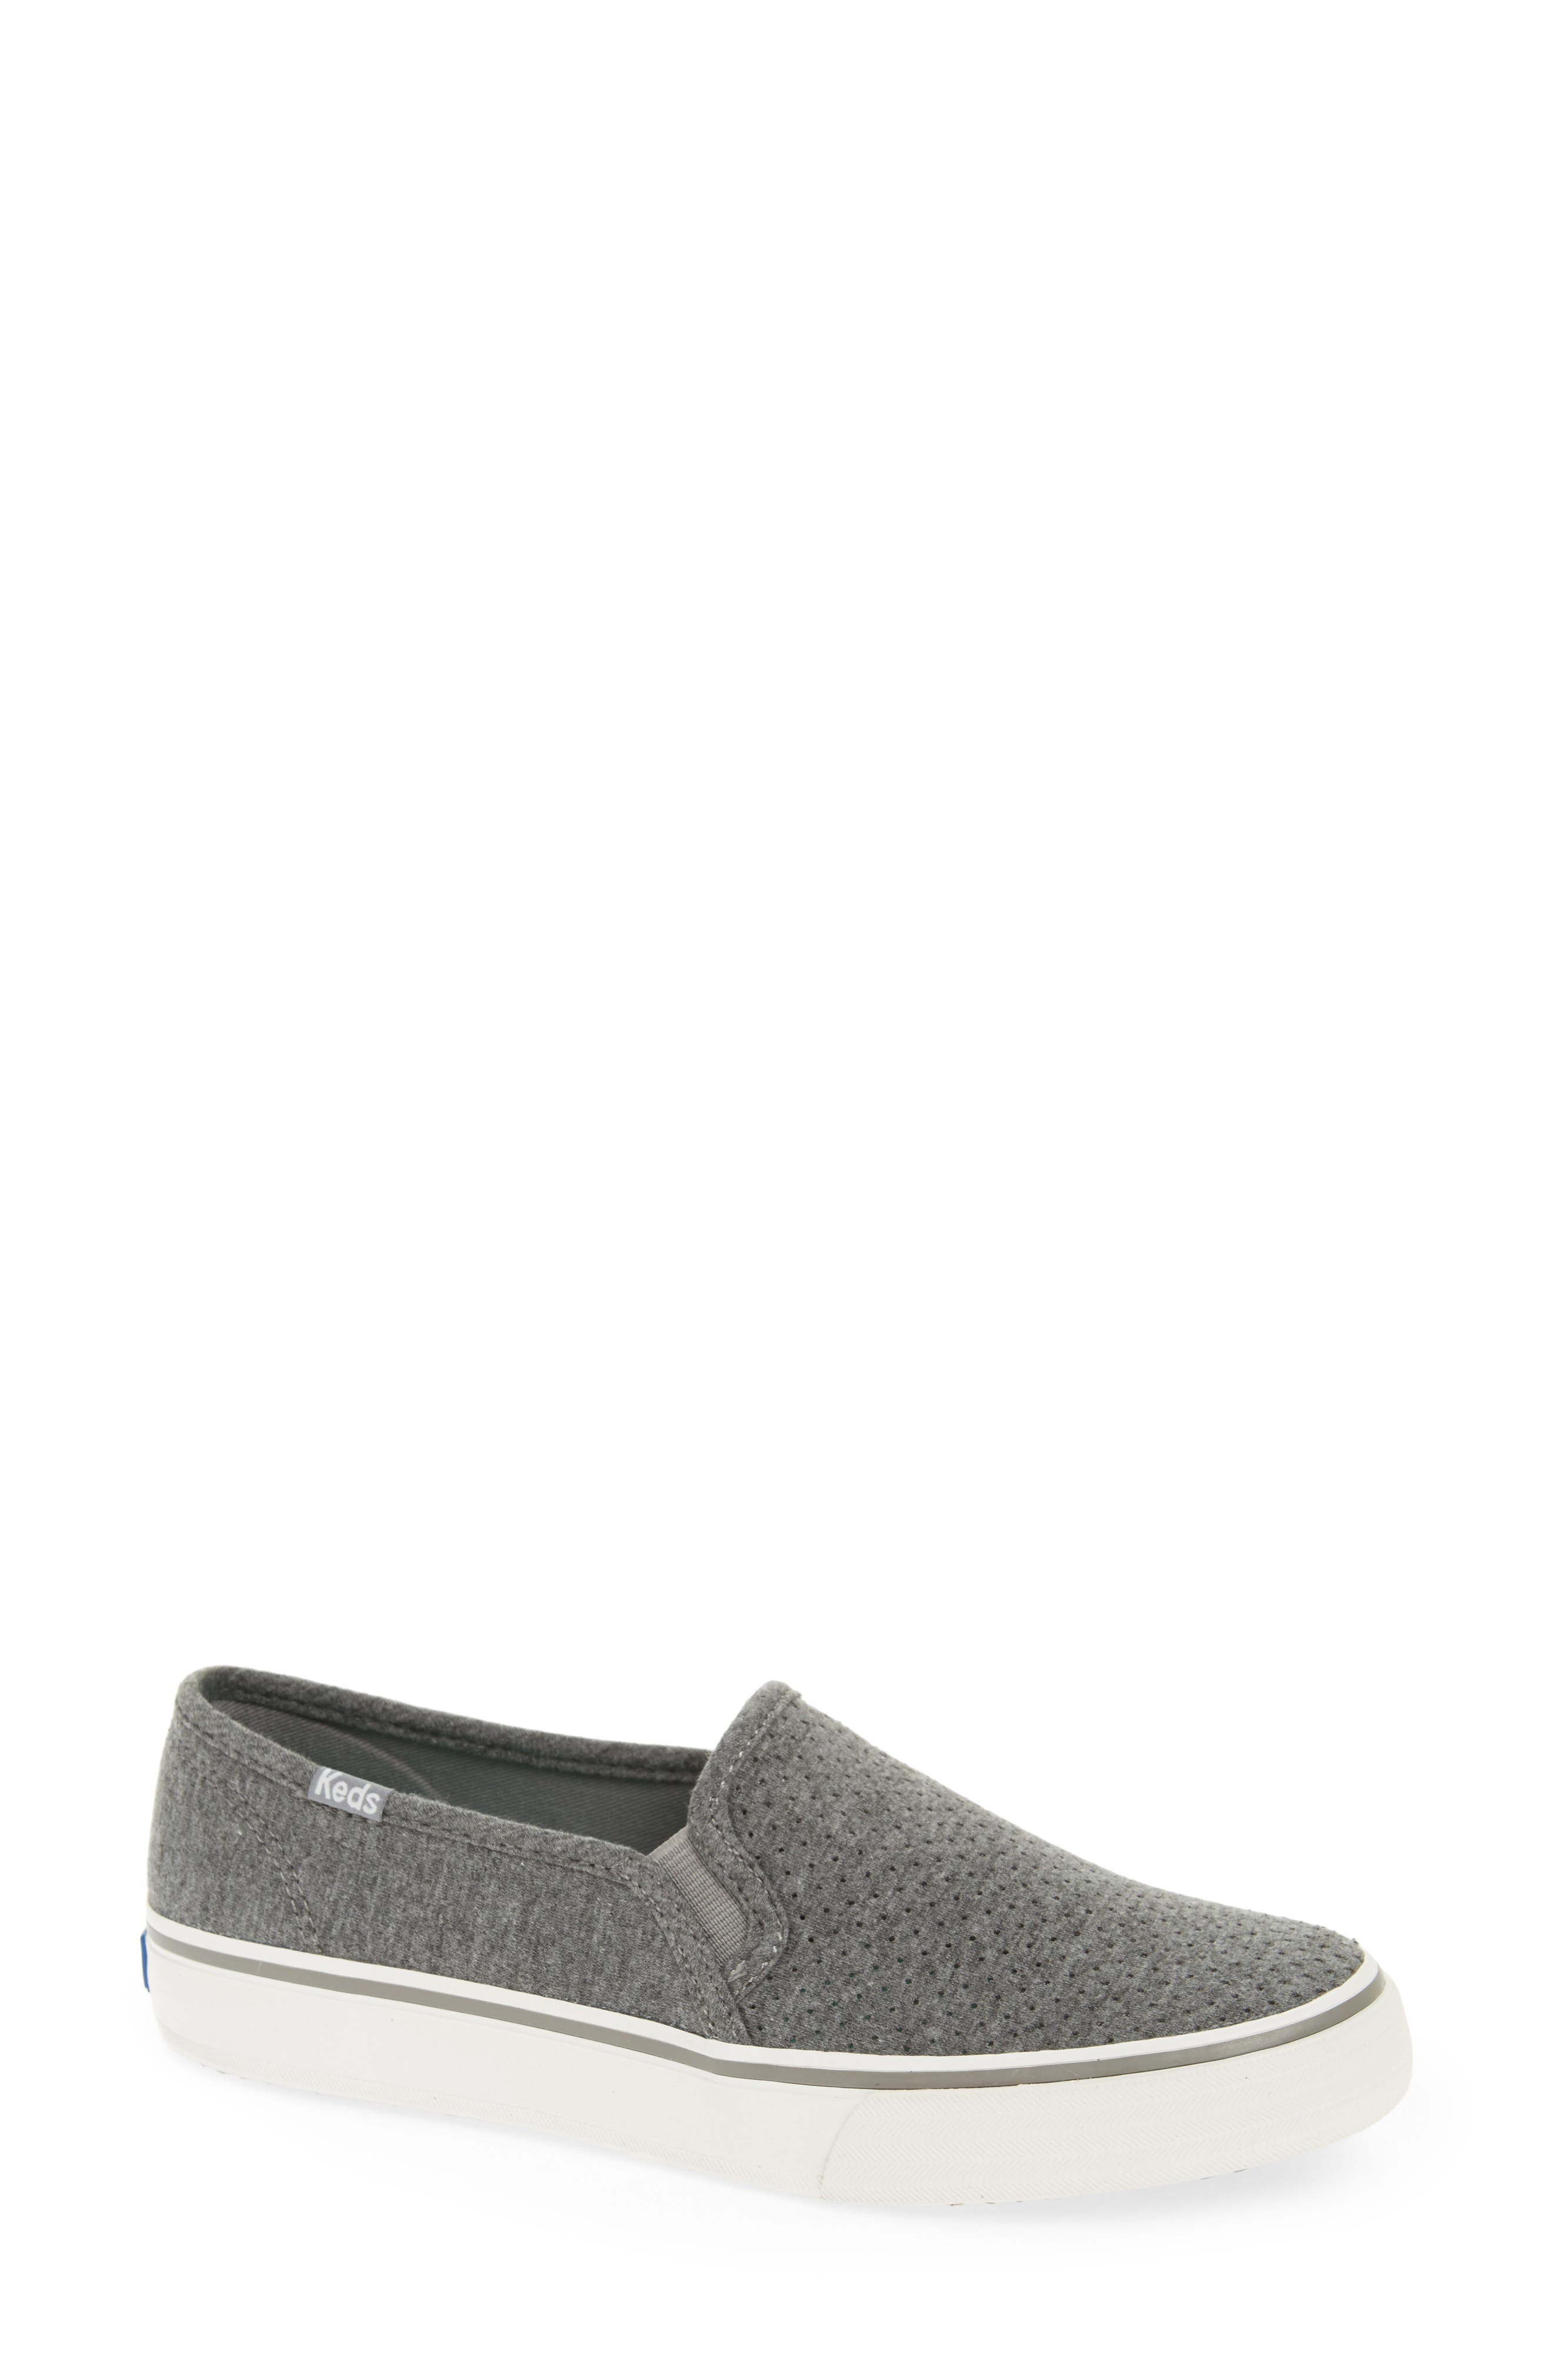 Double Decker Perforated Slip-On Sneaker,                             Main thumbnail 1, color,